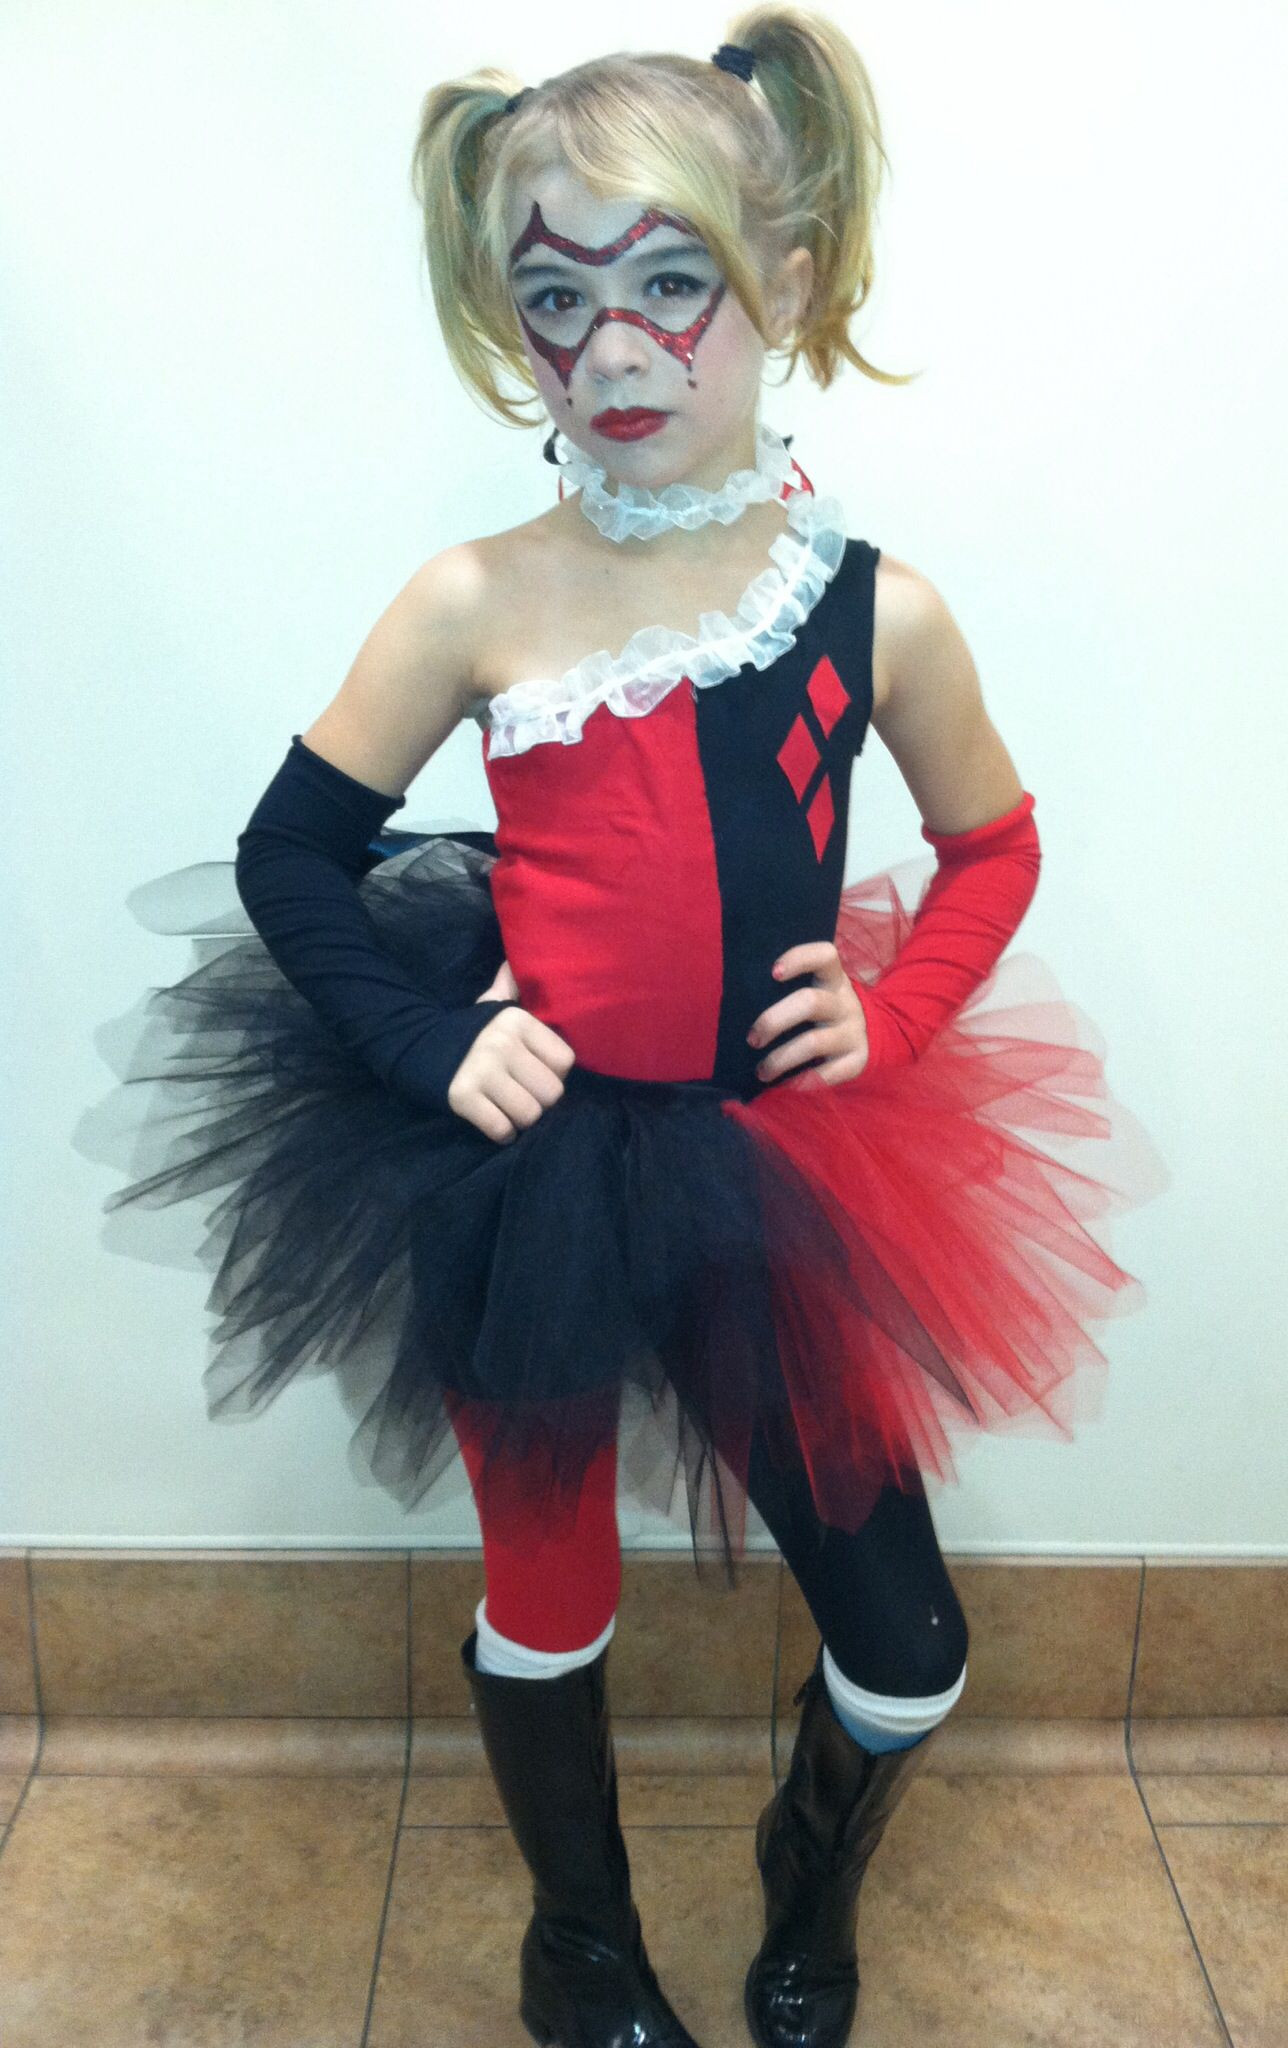 Best ideas about DIY Harley Quinn Costume For Kids . Save or Pin Harley Quinn costume handmade no pattern sorry Now.